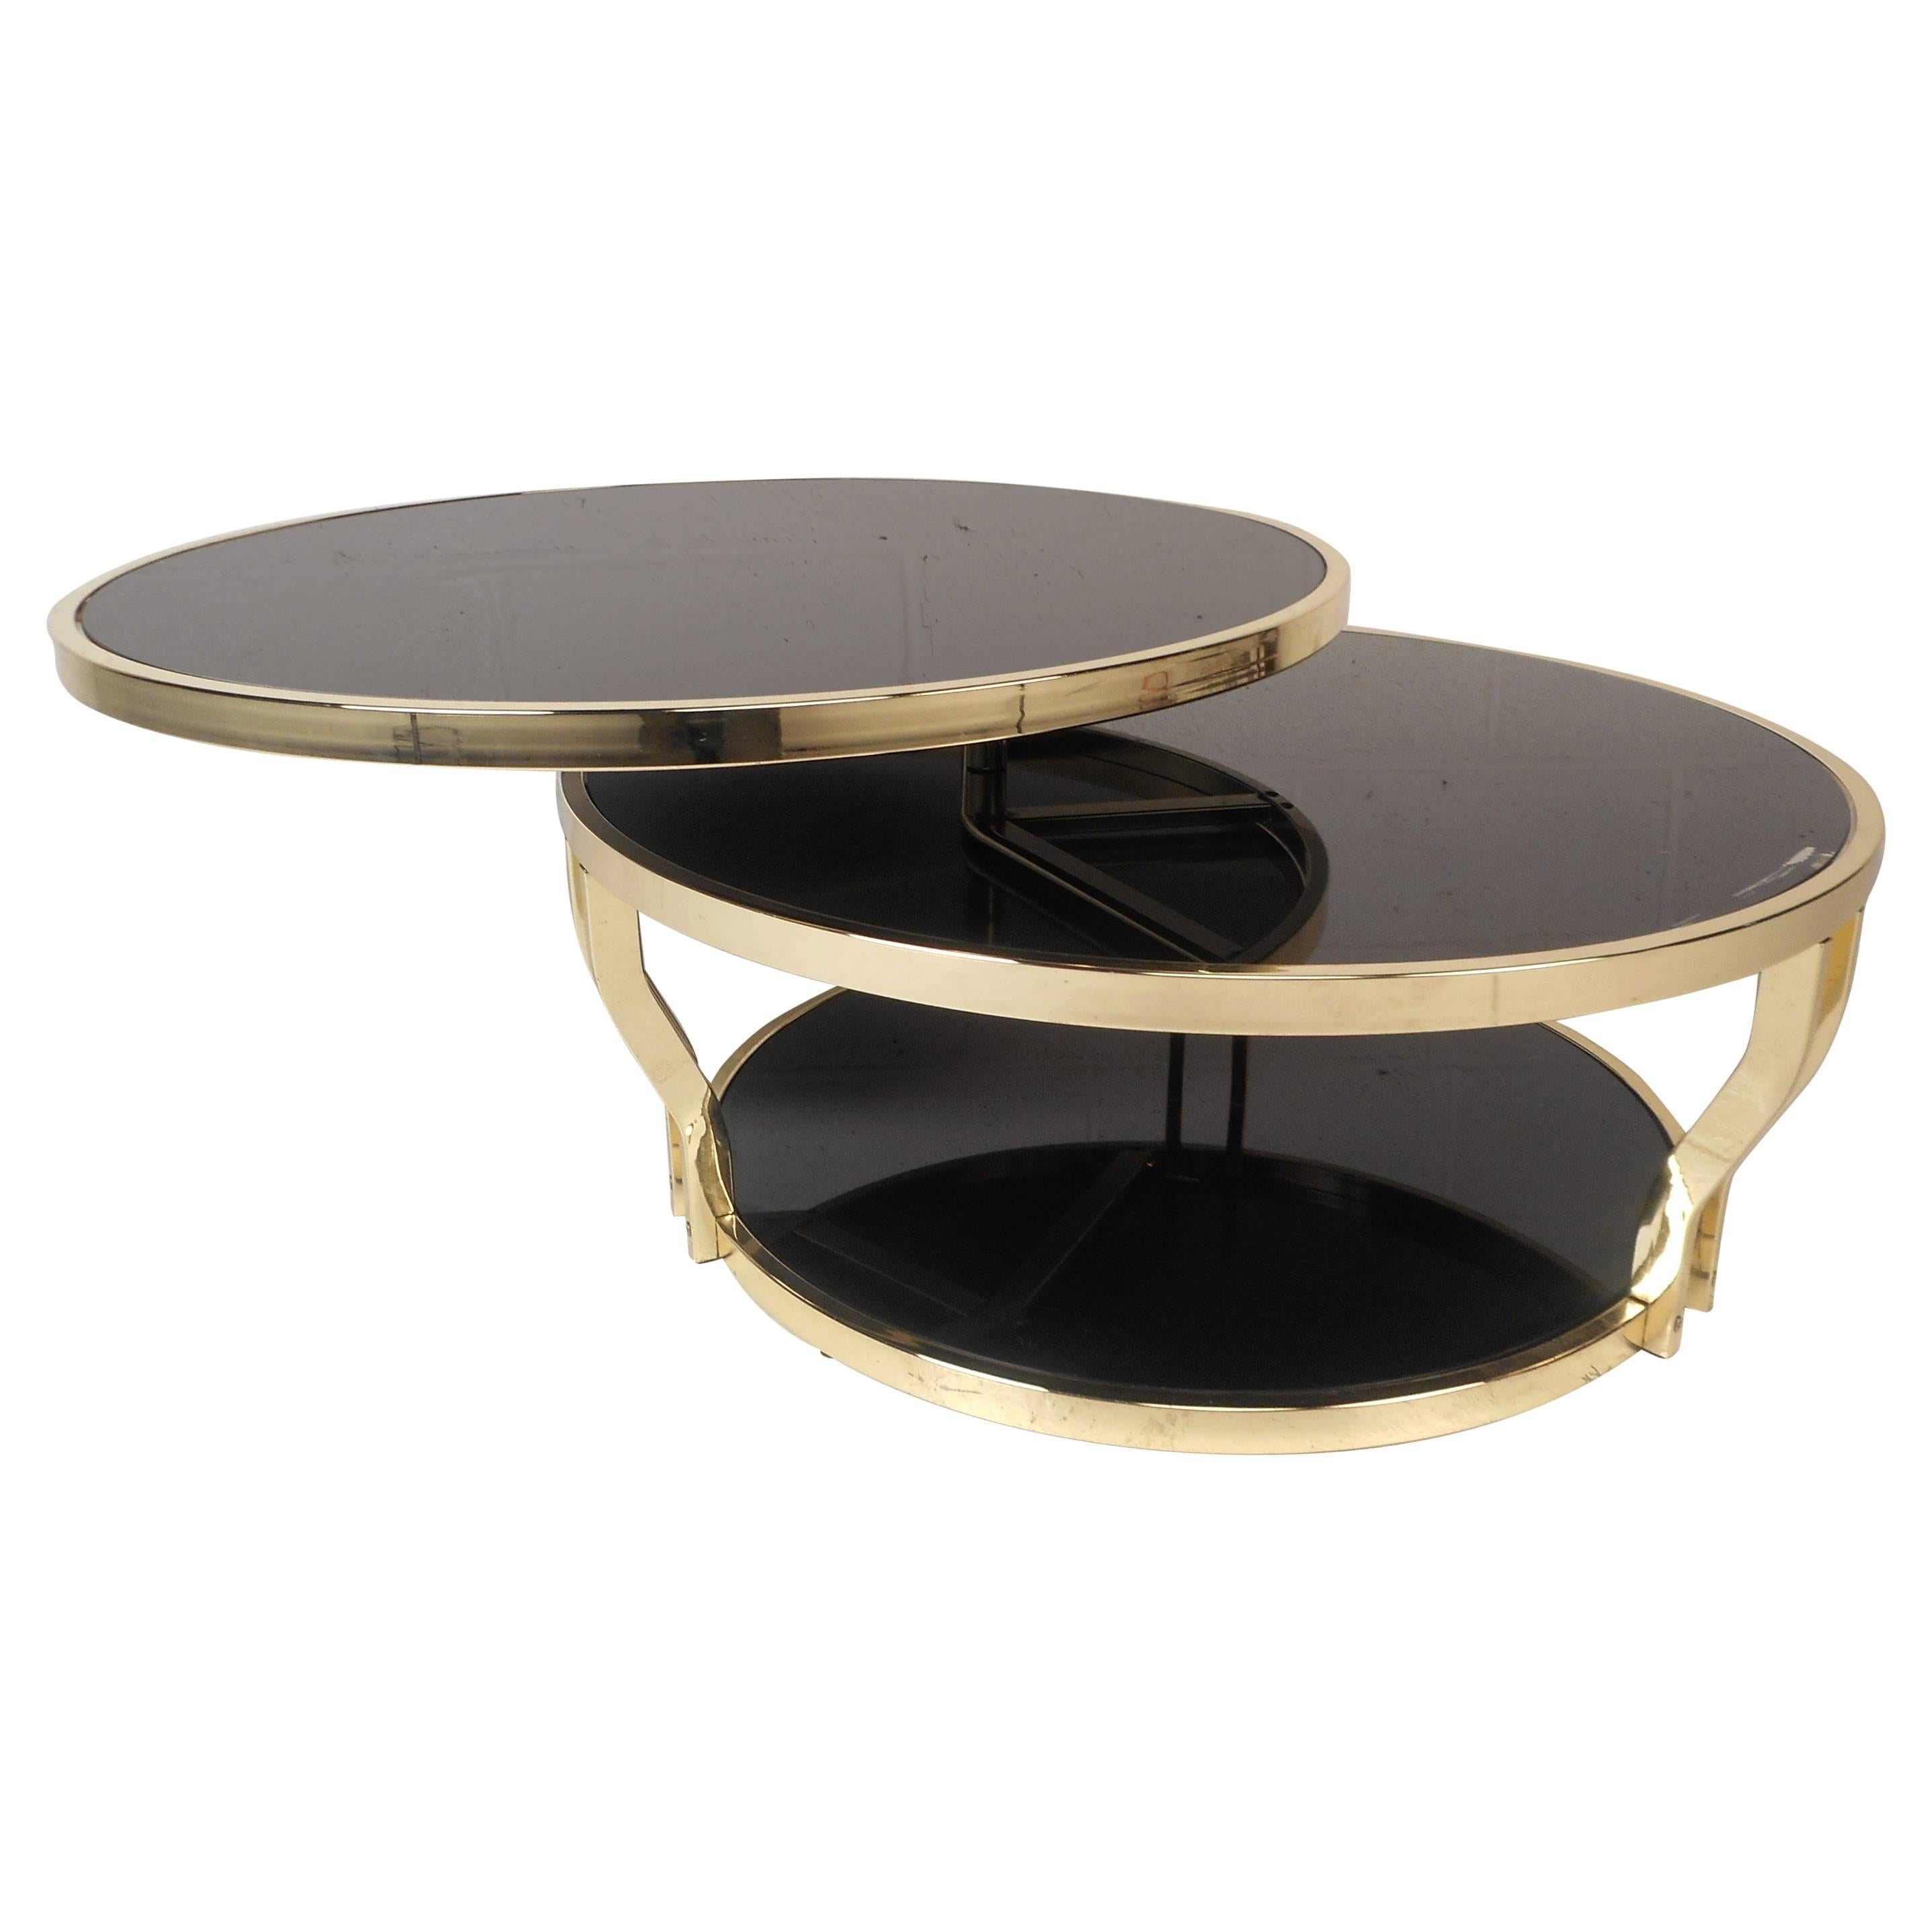 Superieur Mid Century Modern Italian Brass And Smoked Glass Swivel Coffee Table